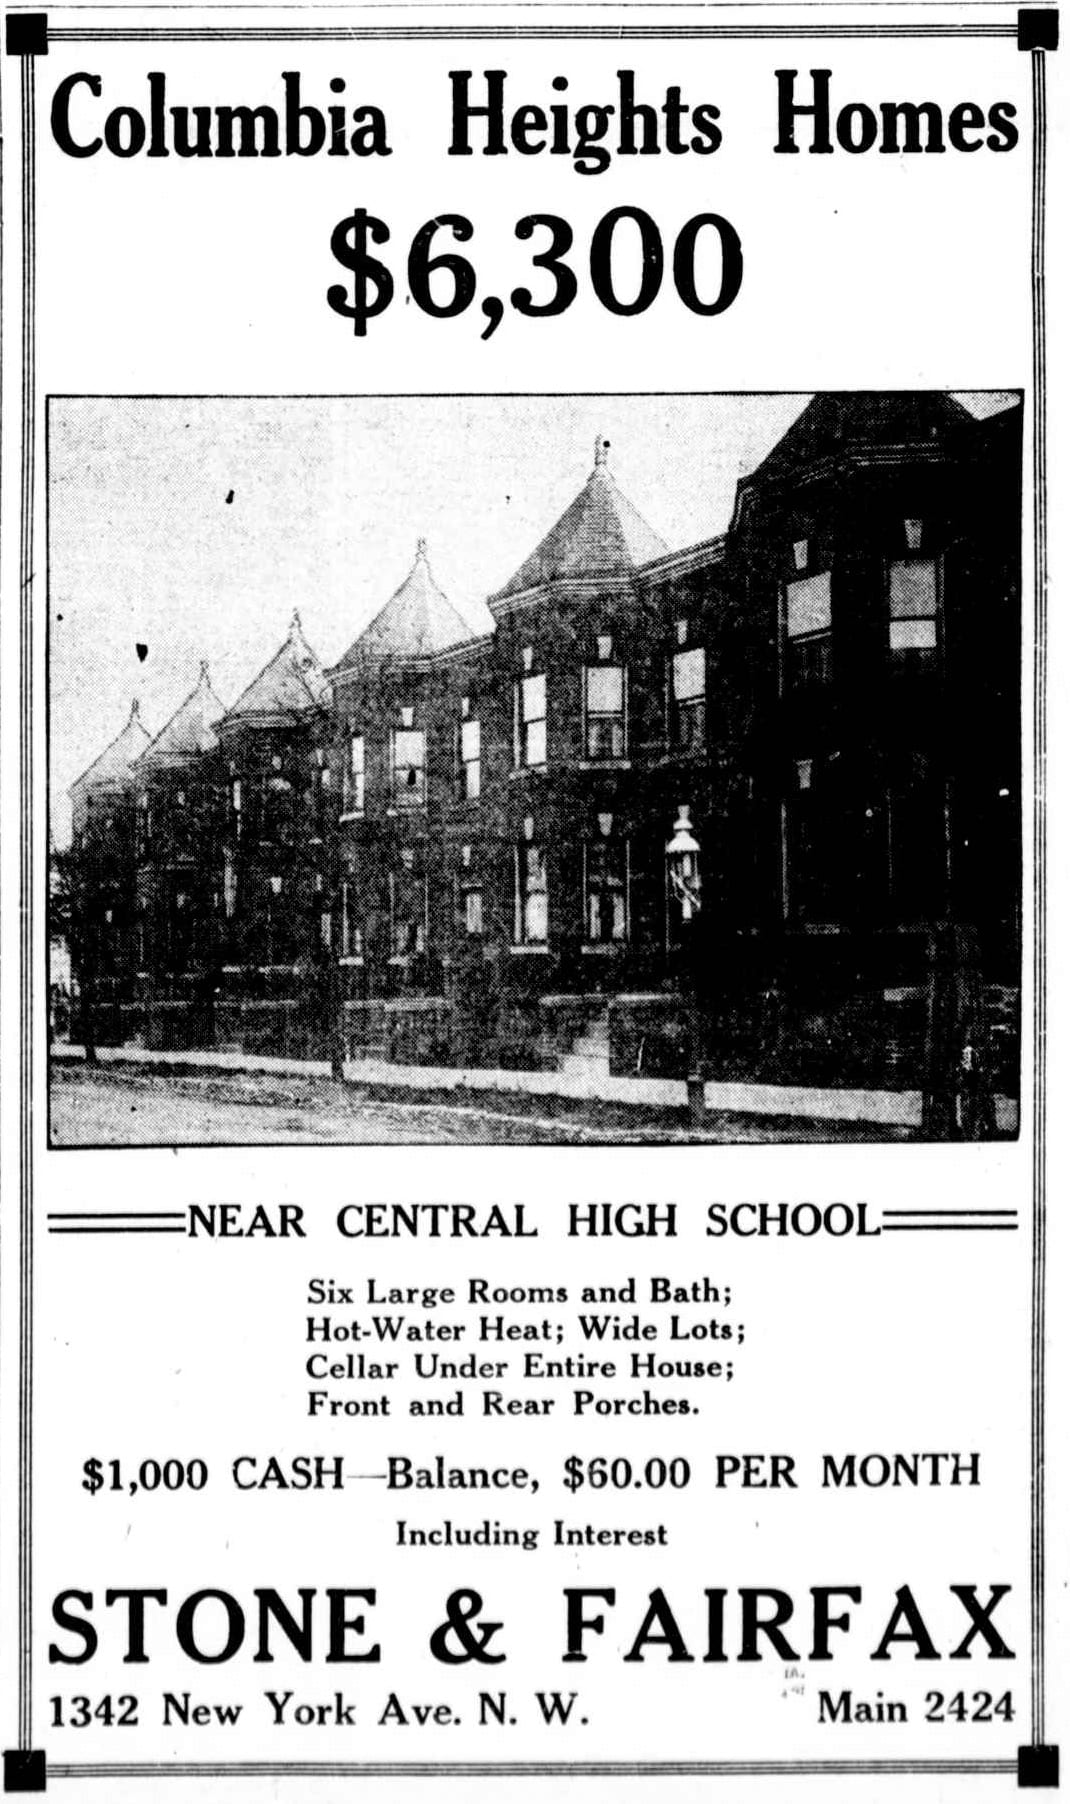 1921 Ad for Columbia Heights Homes